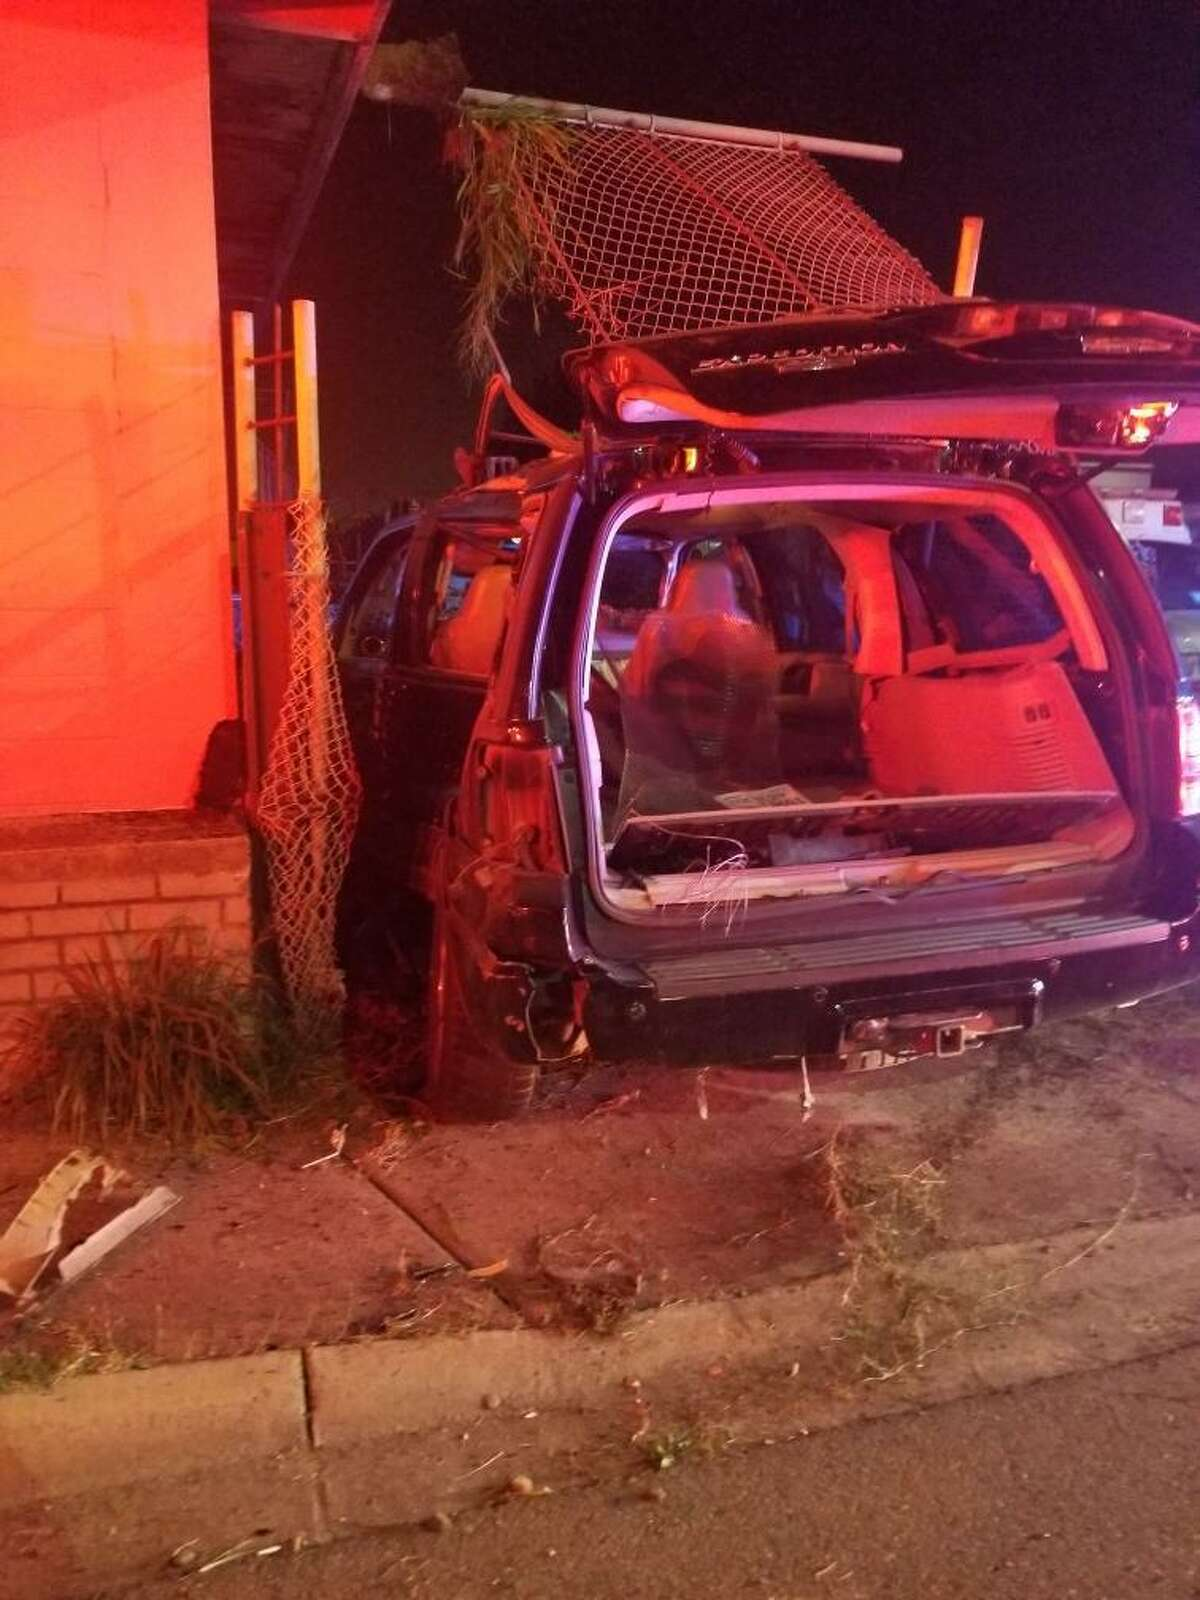 According to the Laredo Fire Department, a vehicle drove into a building on early Saturday morning.